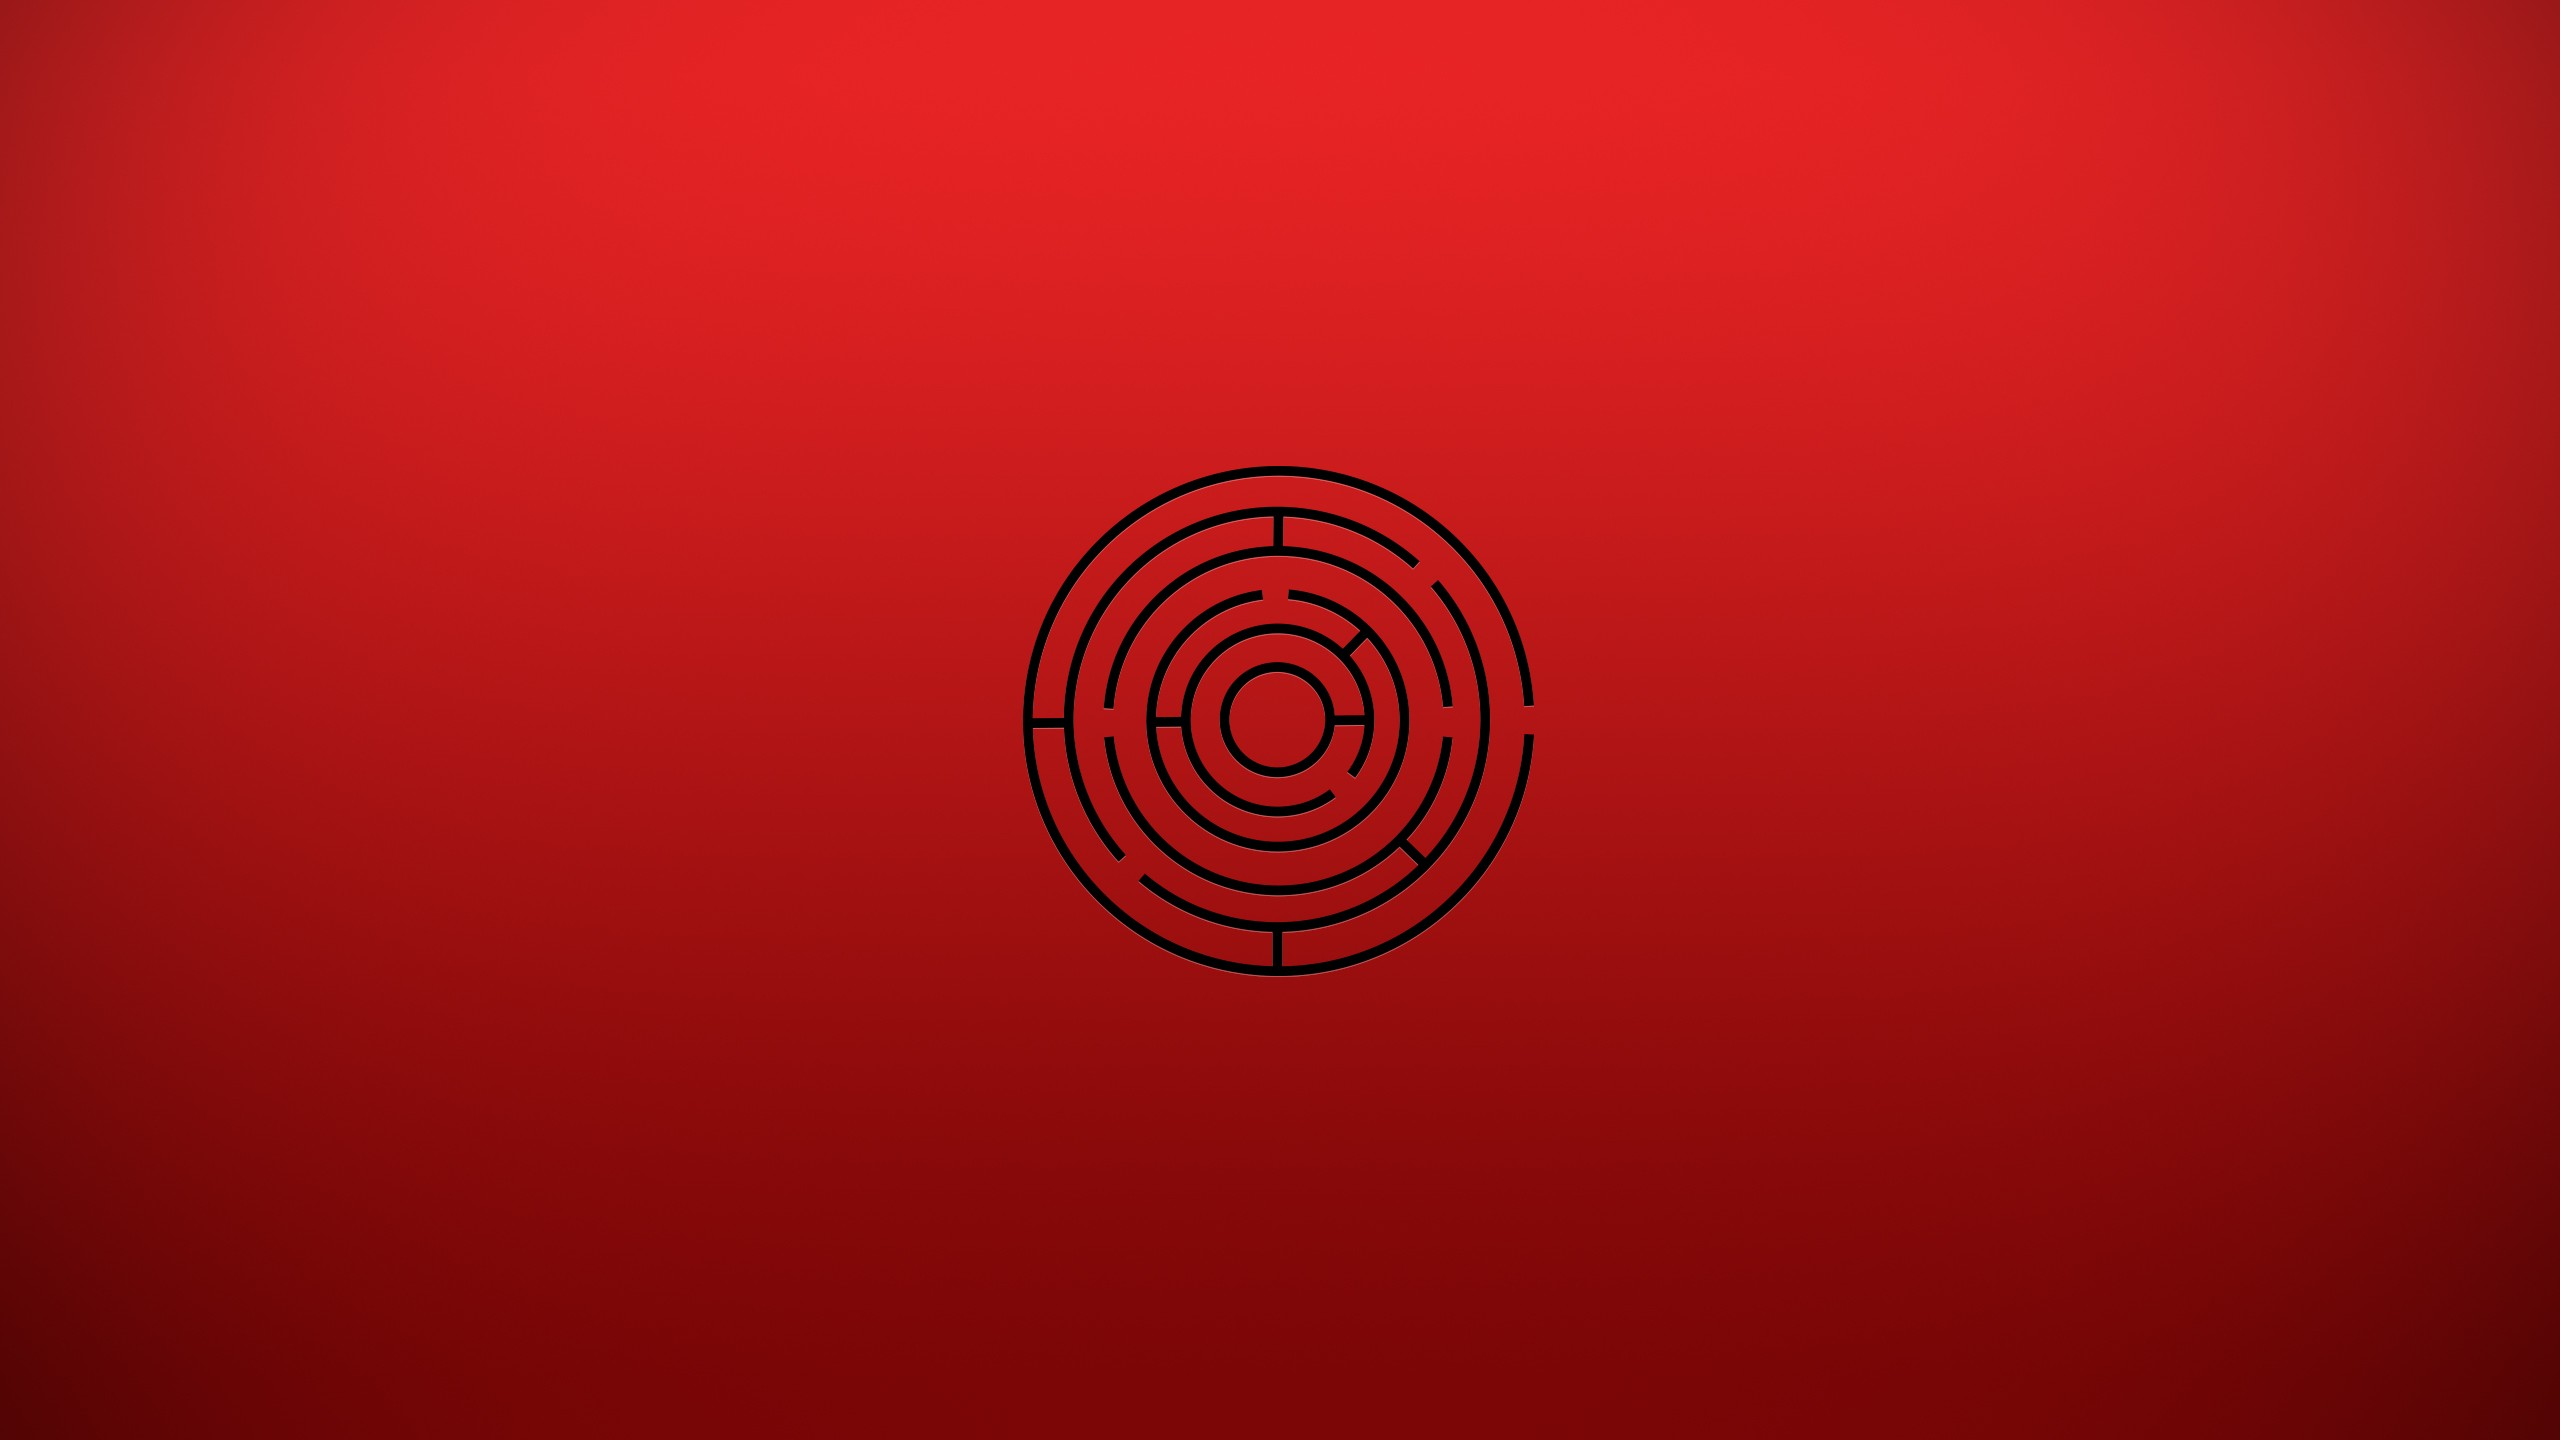 4 Maze Hd Wallpapers Background Images Wallpaper Abyss